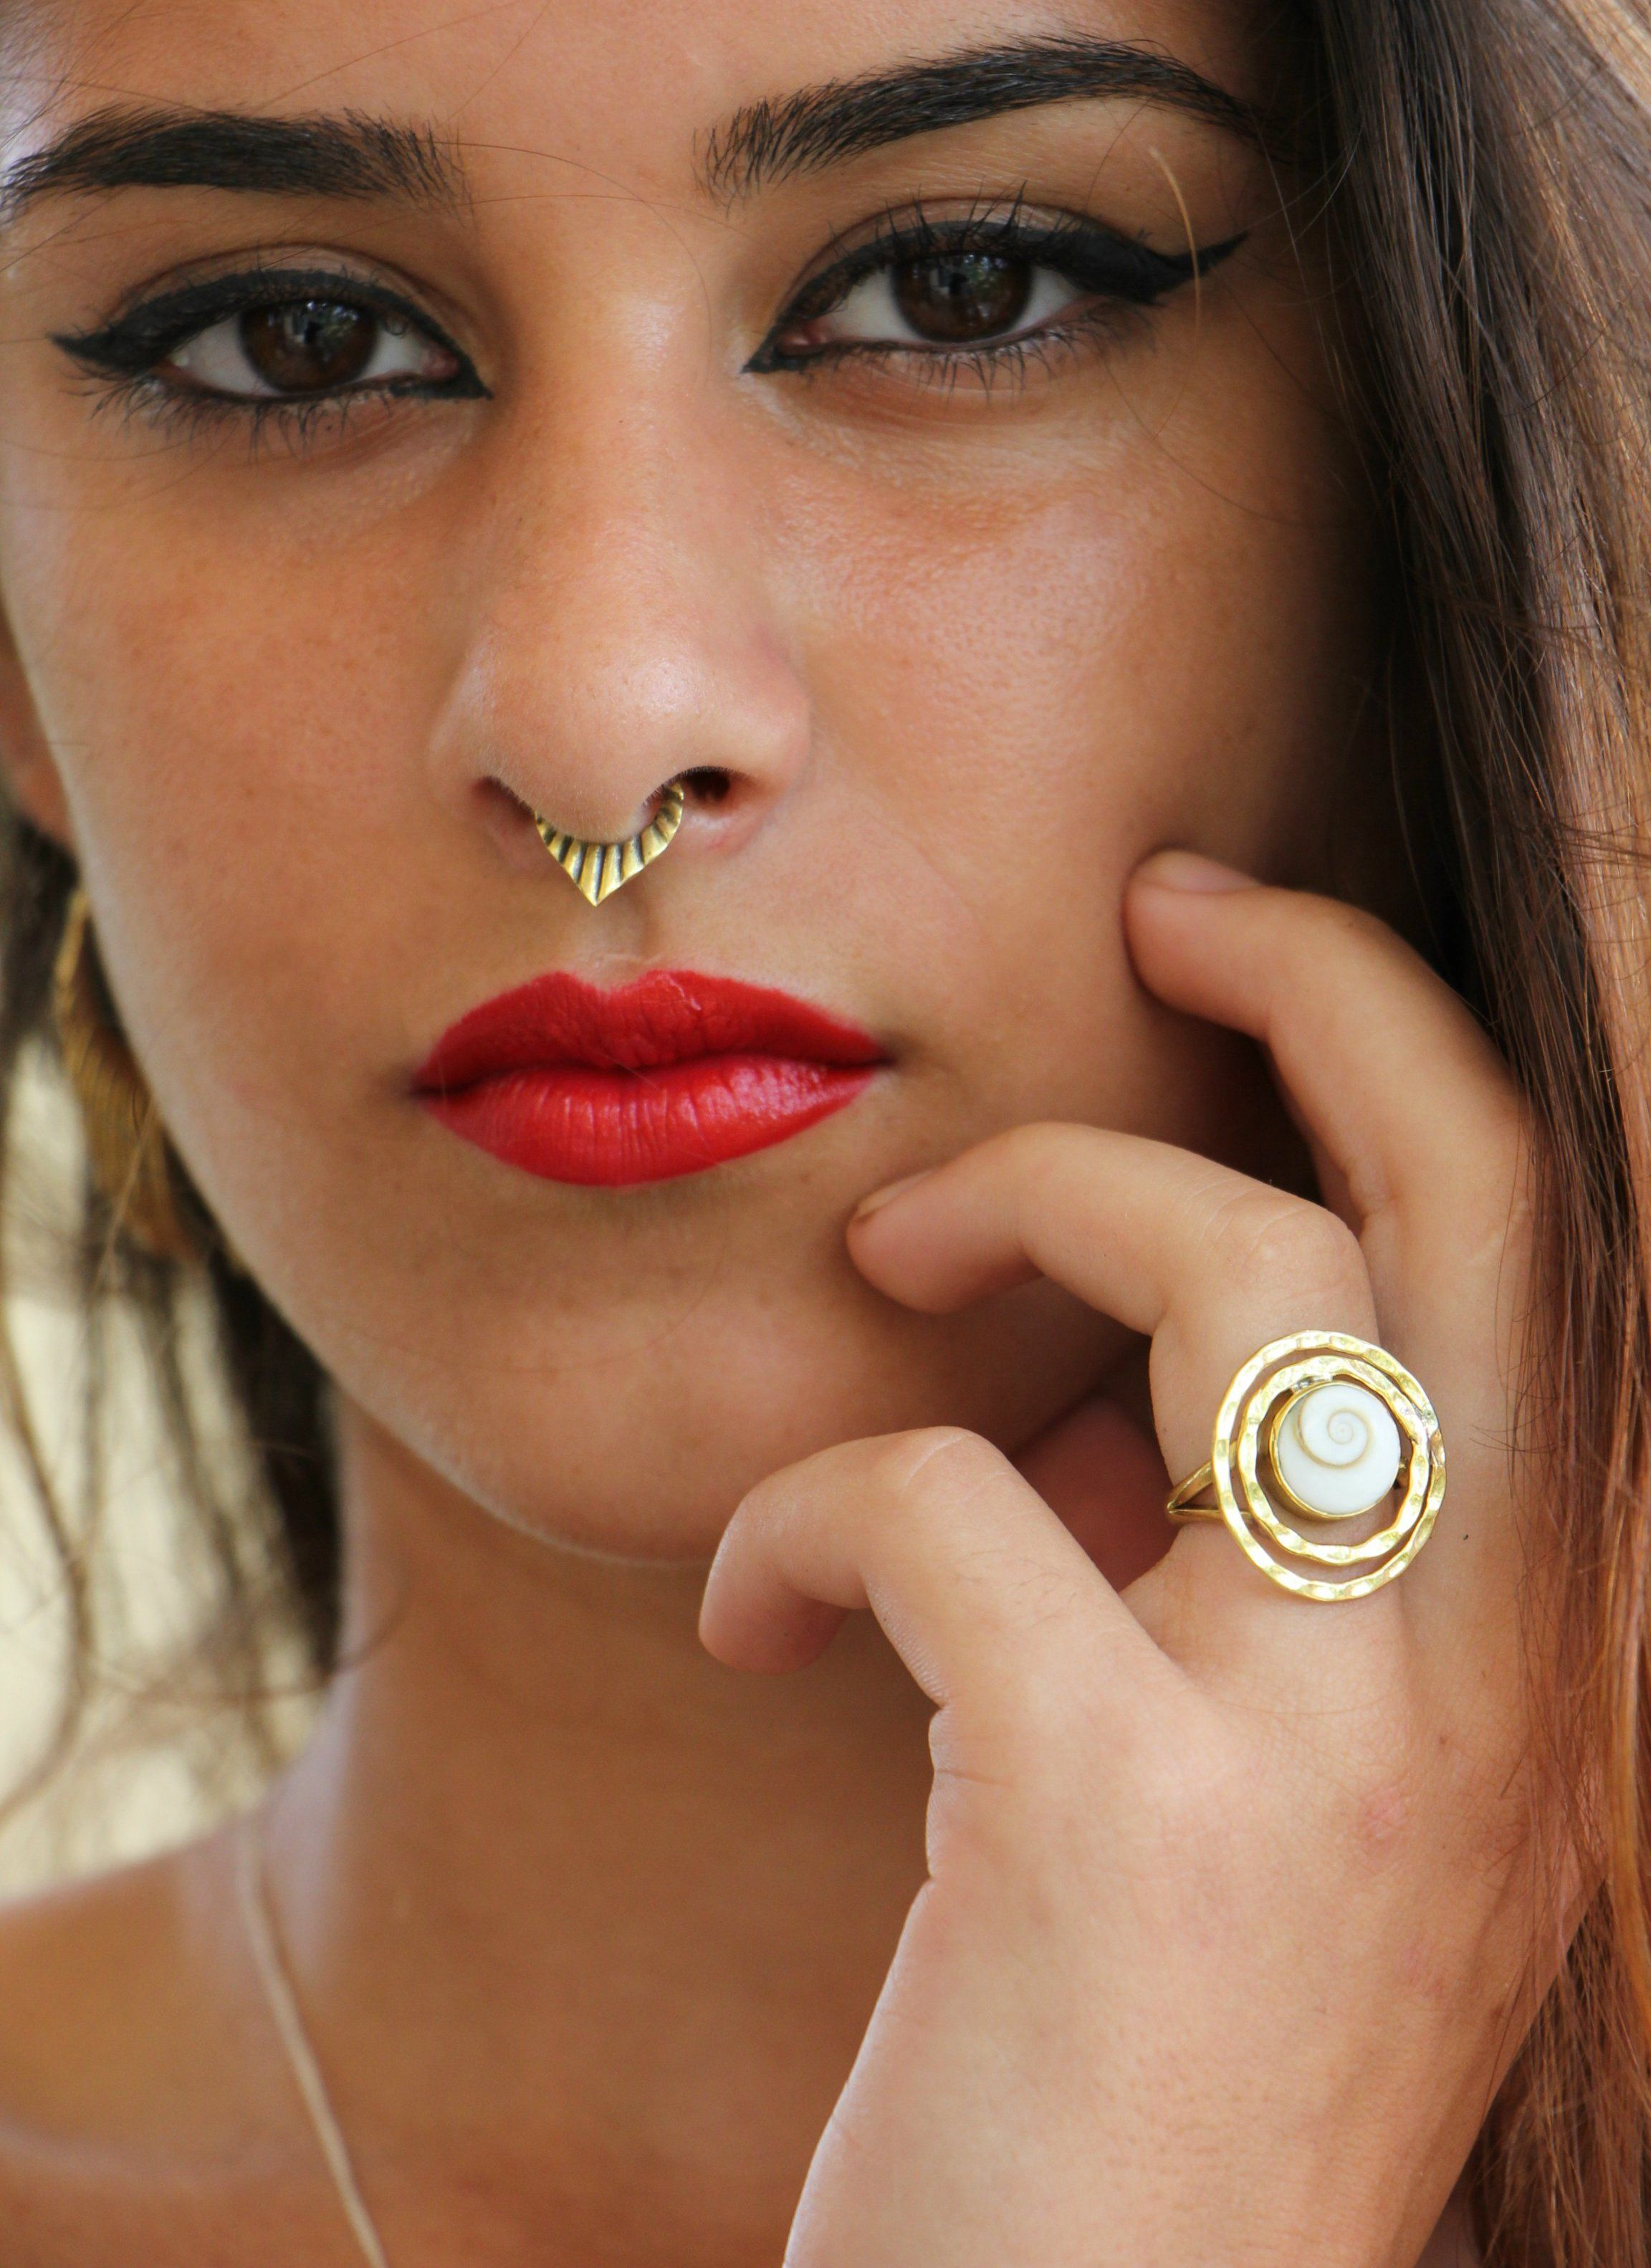 Brass Septum Nose Piercing Tribal Bras Septum Ring Cocoroots Jewelry Face Piercings